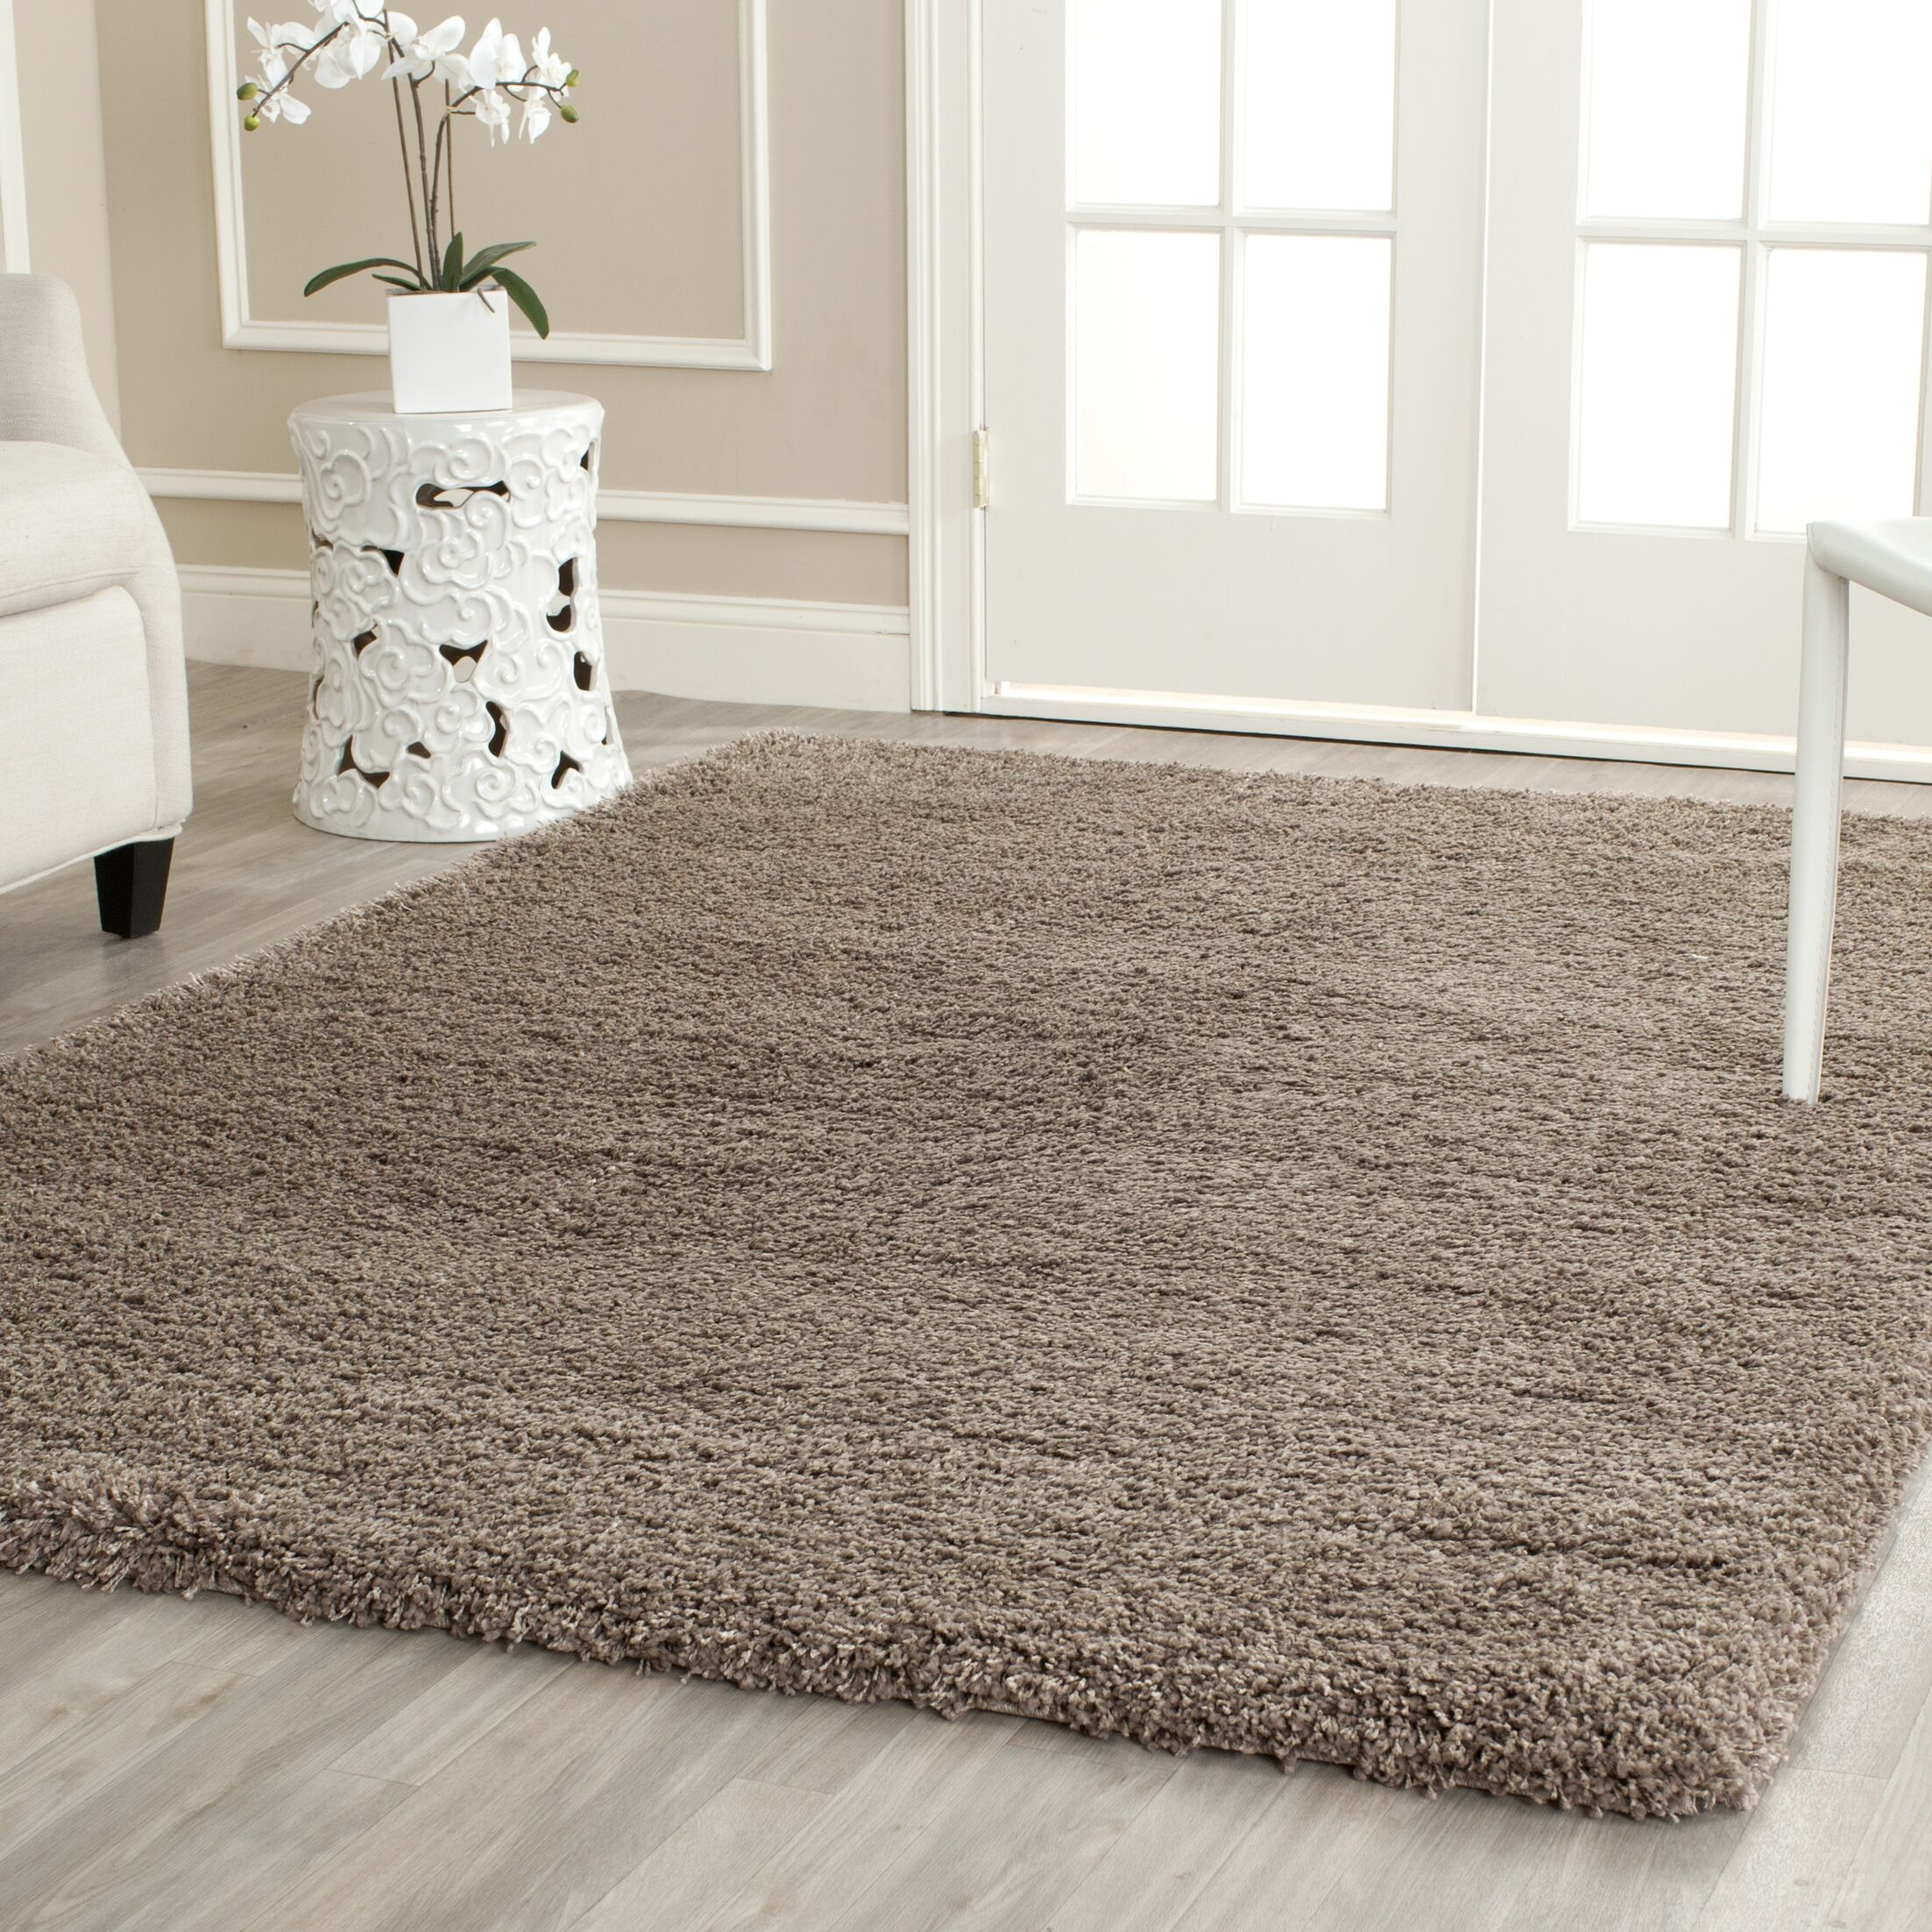 Boice Taupe Area Rug Rug Size: Rectangle 5'3